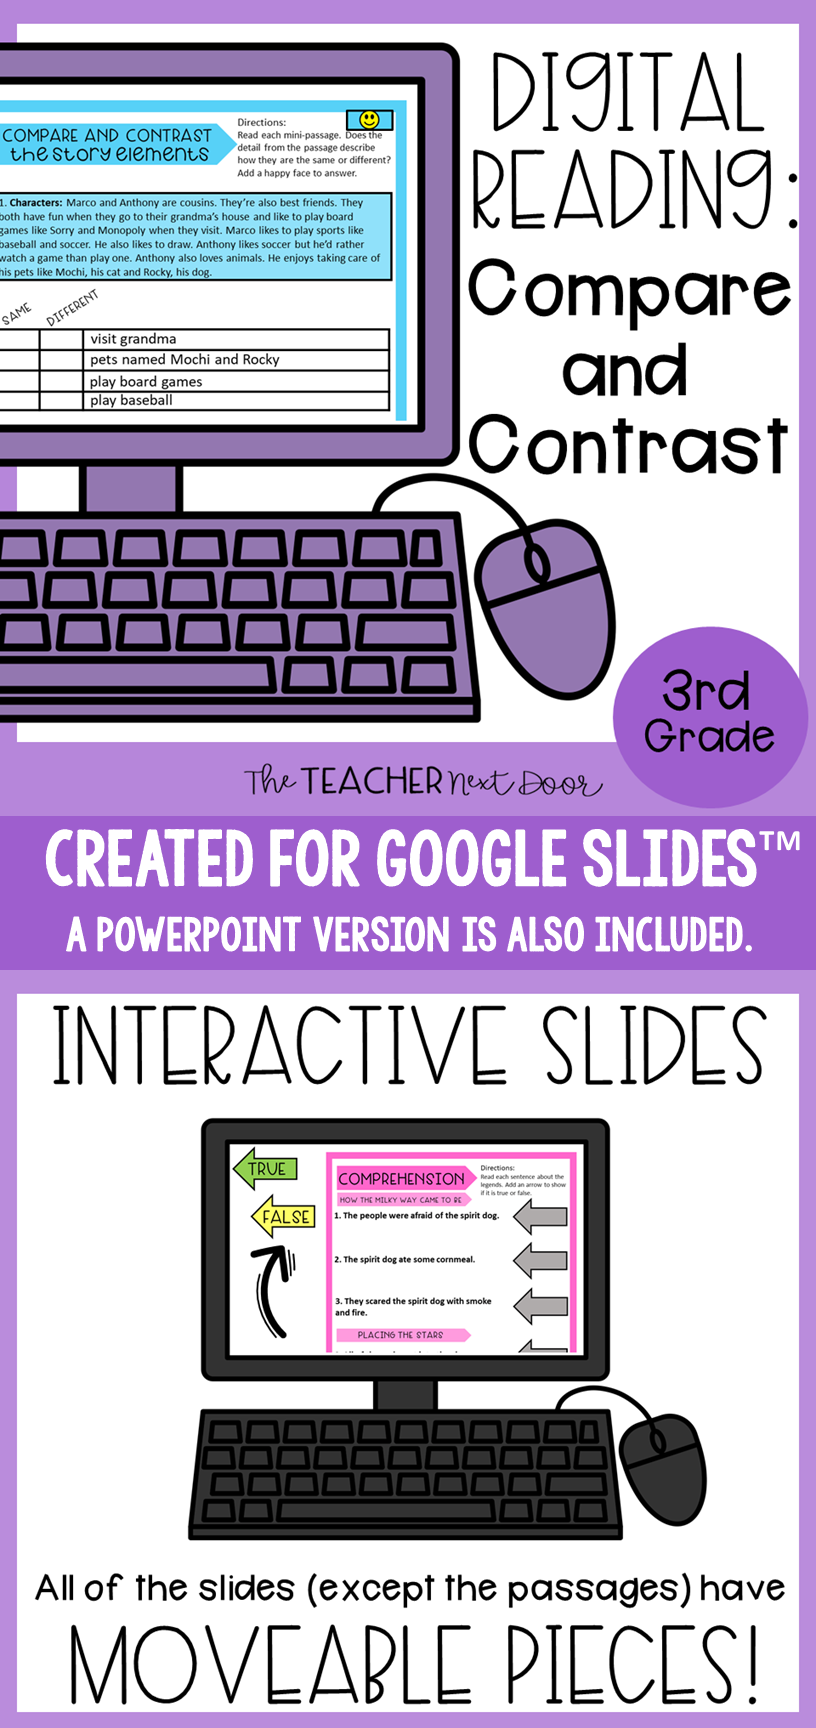 Compare And Contrast Digital Reading For Google Slides Distance Learning Digital Reading Reading Comprehension Informational Text Structures [ 1728 x 816 Pixel ]